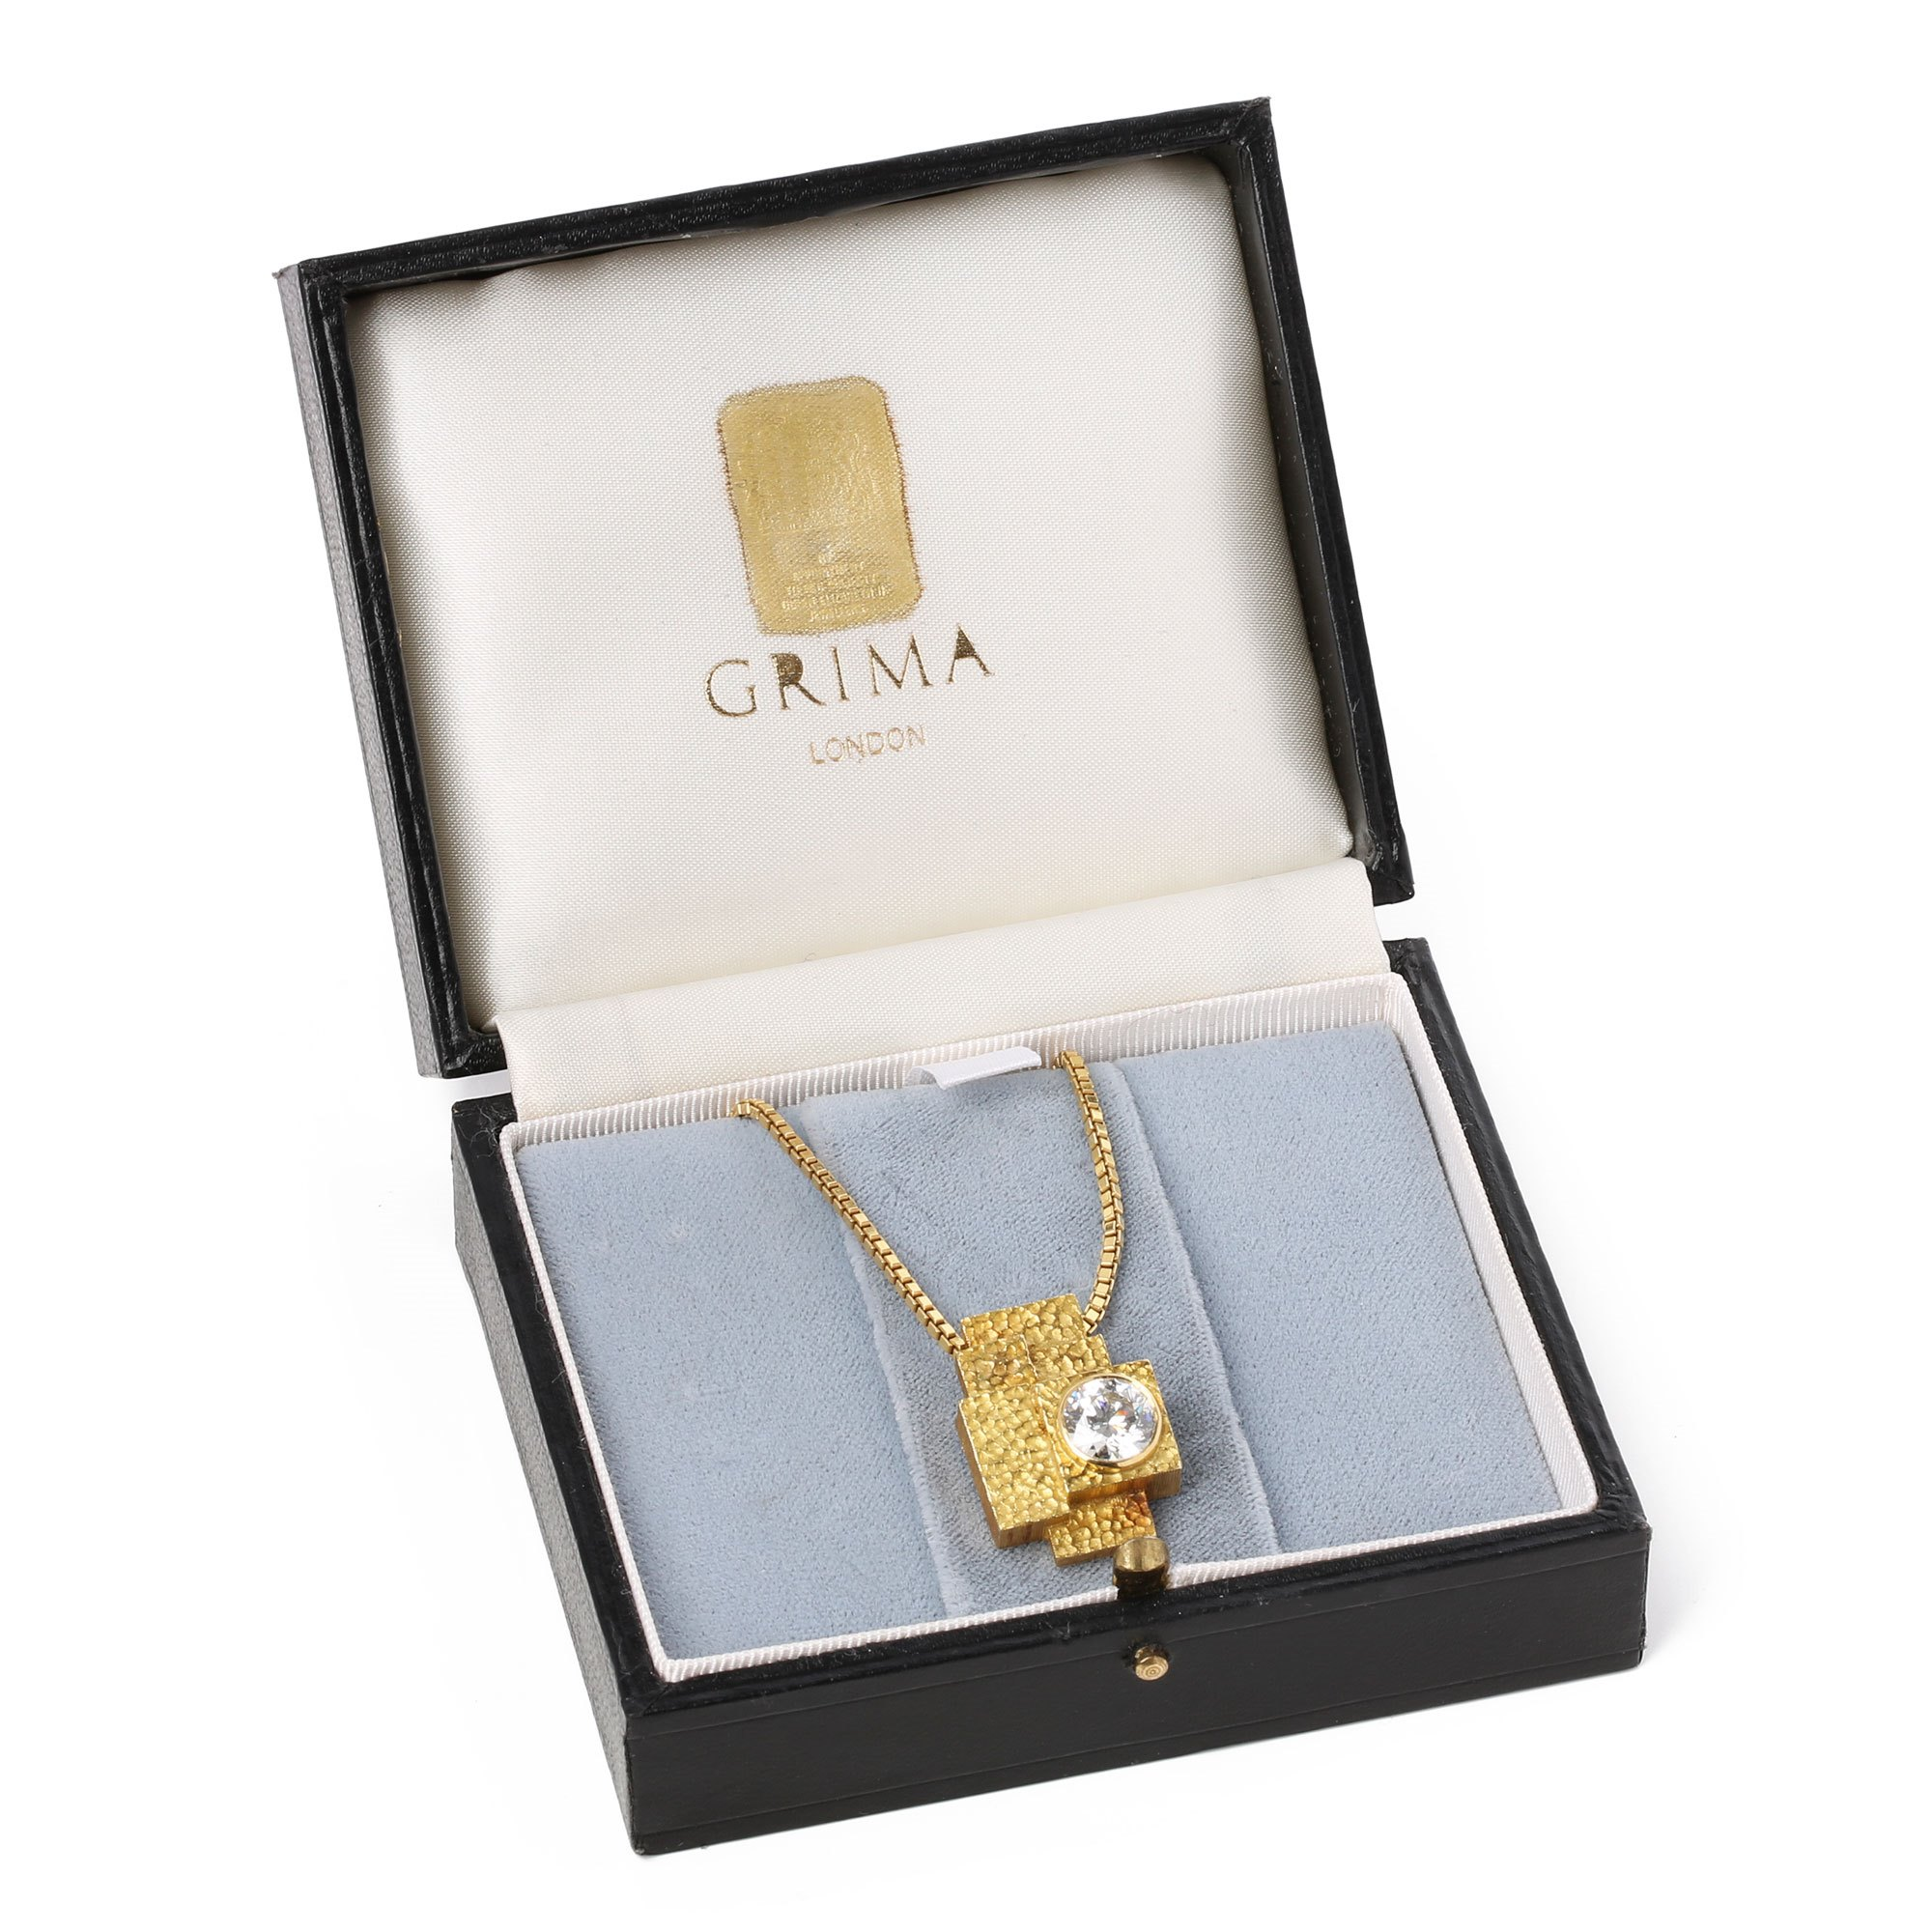 Grima 2.18ct Diamond Bespoke Pendant Necklace